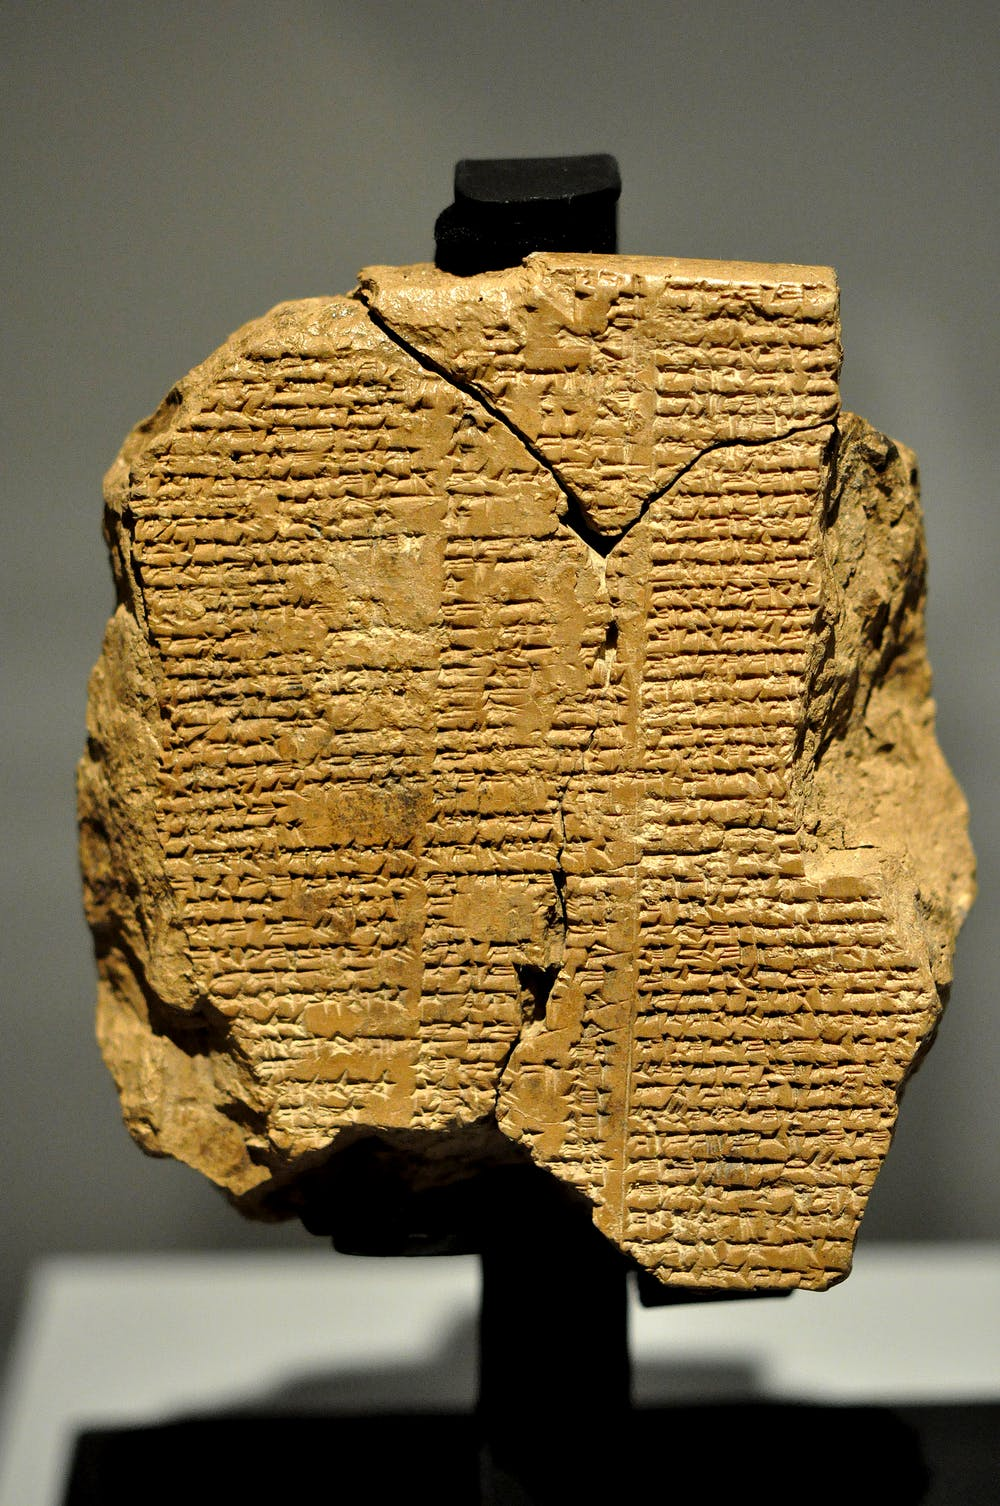 Yellow Wallpaper Essays Tablet V Of The Epic Of Gilgamesh Osama Shukir Muhammed Amin Wikimedia  Commons Sample Proposal Essay also What Is A Thesis Statement For An Essay Guide To The Classics The Epic Of Gilgamesh The Yellow Wallpaper Essay Topics